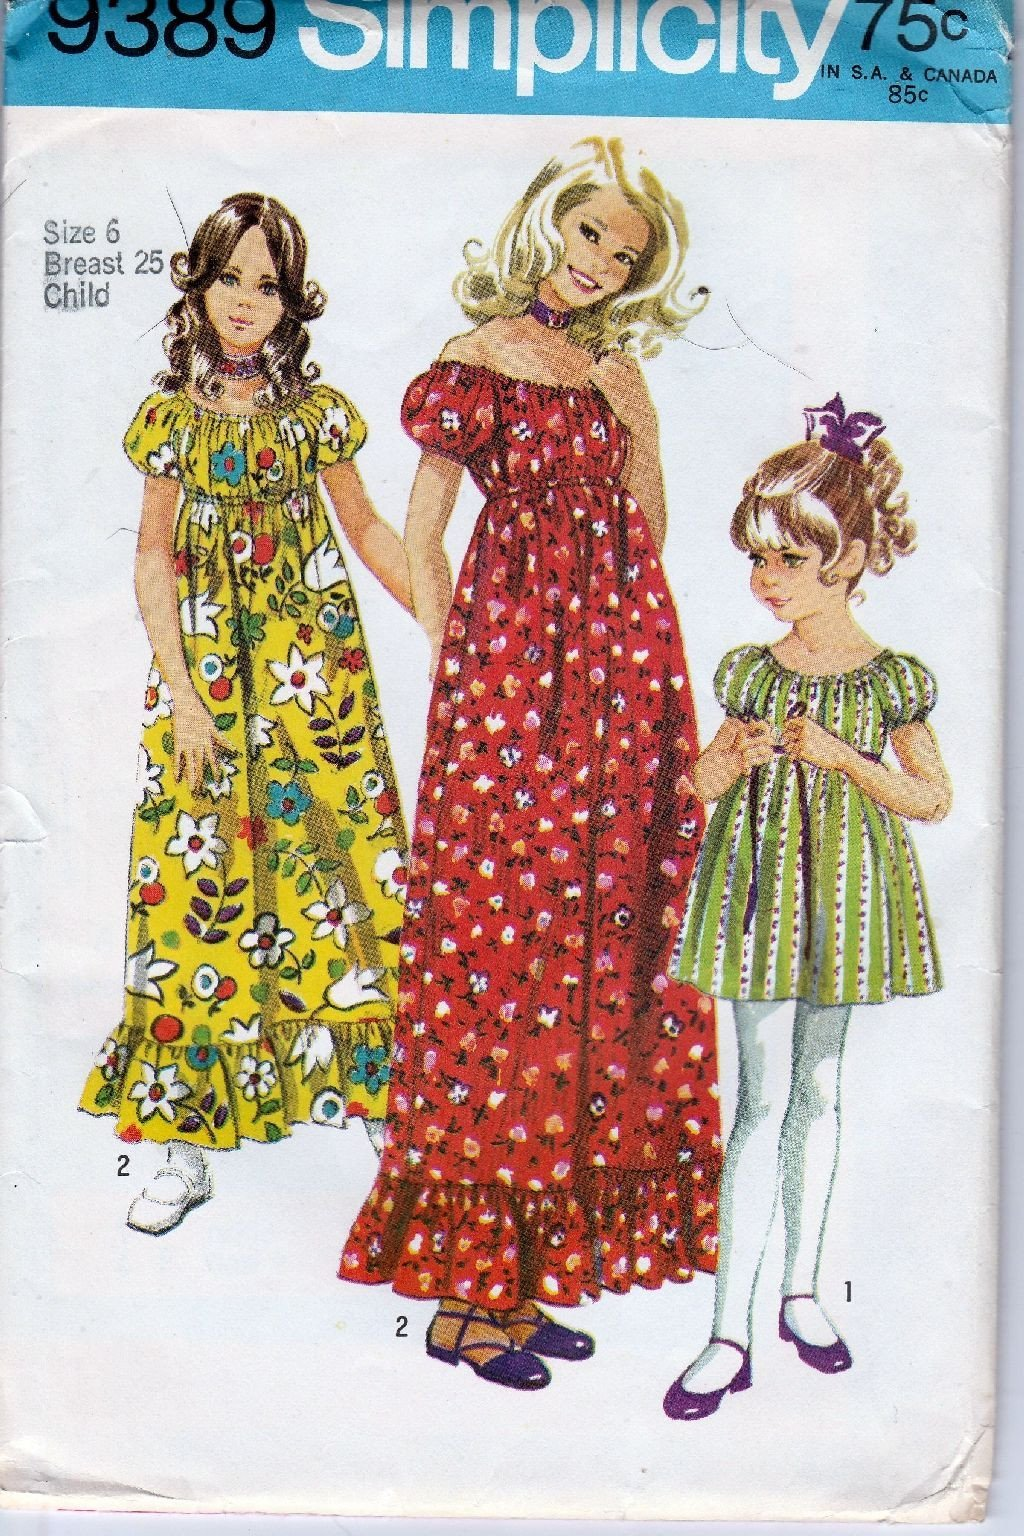 Simplicity 9389 Vintage 1970's Sewing Pattern Girls Dress Above Knee Gown - VintageStitching - Vintage Sewing Patterns